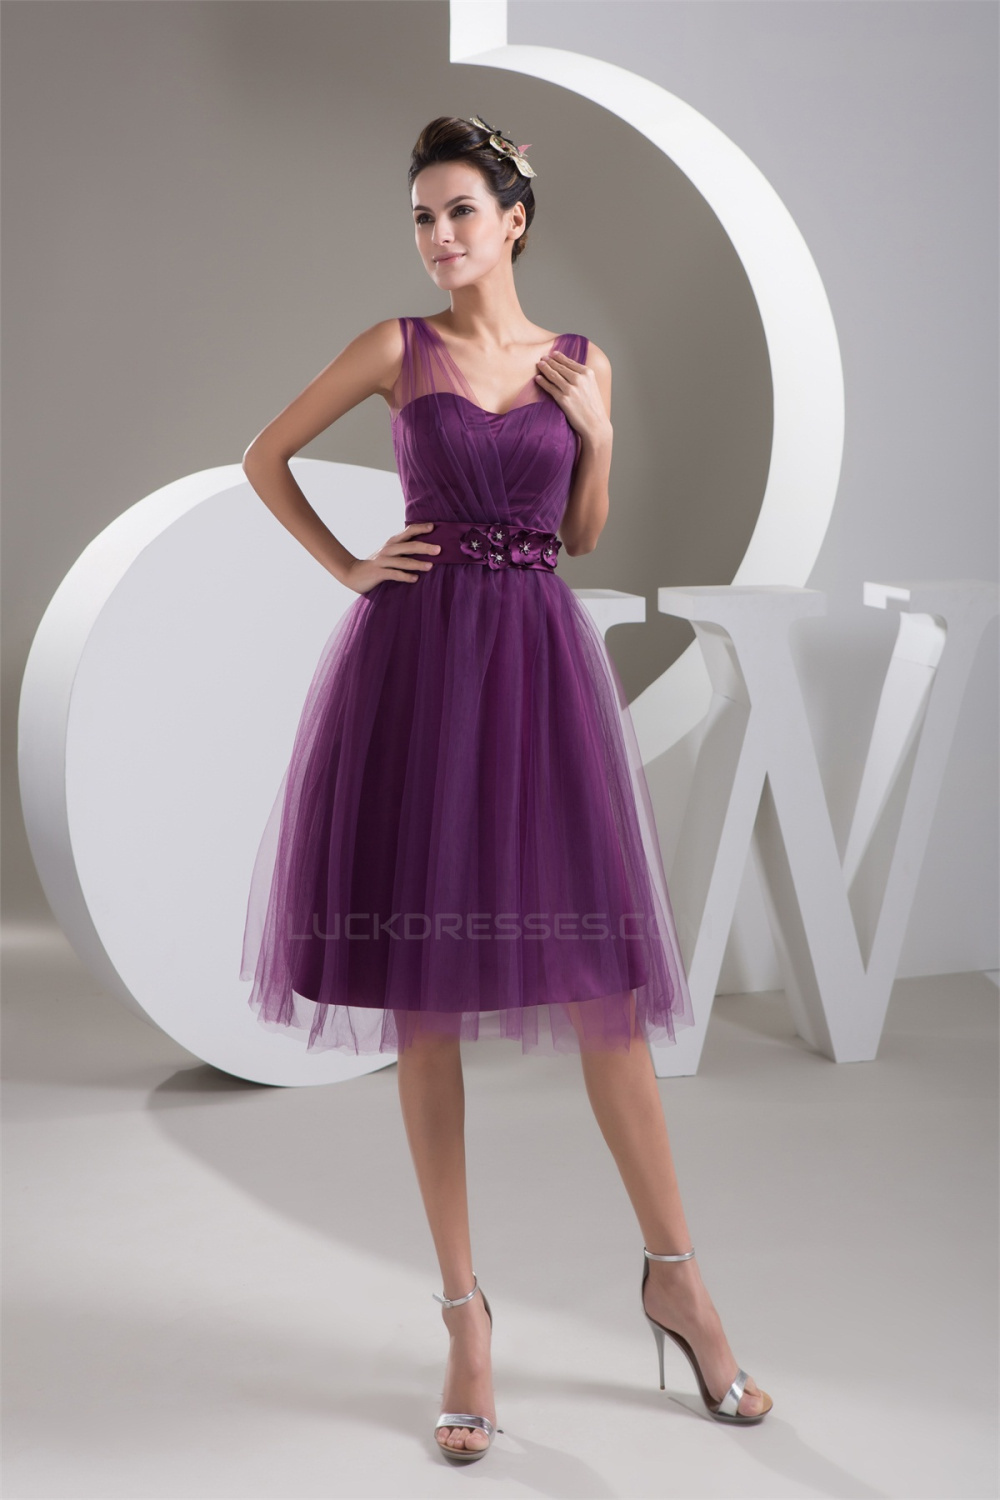 Fine Netting V-Neck Knee-Length Short Purple Bridesmaid Dresses 02010421